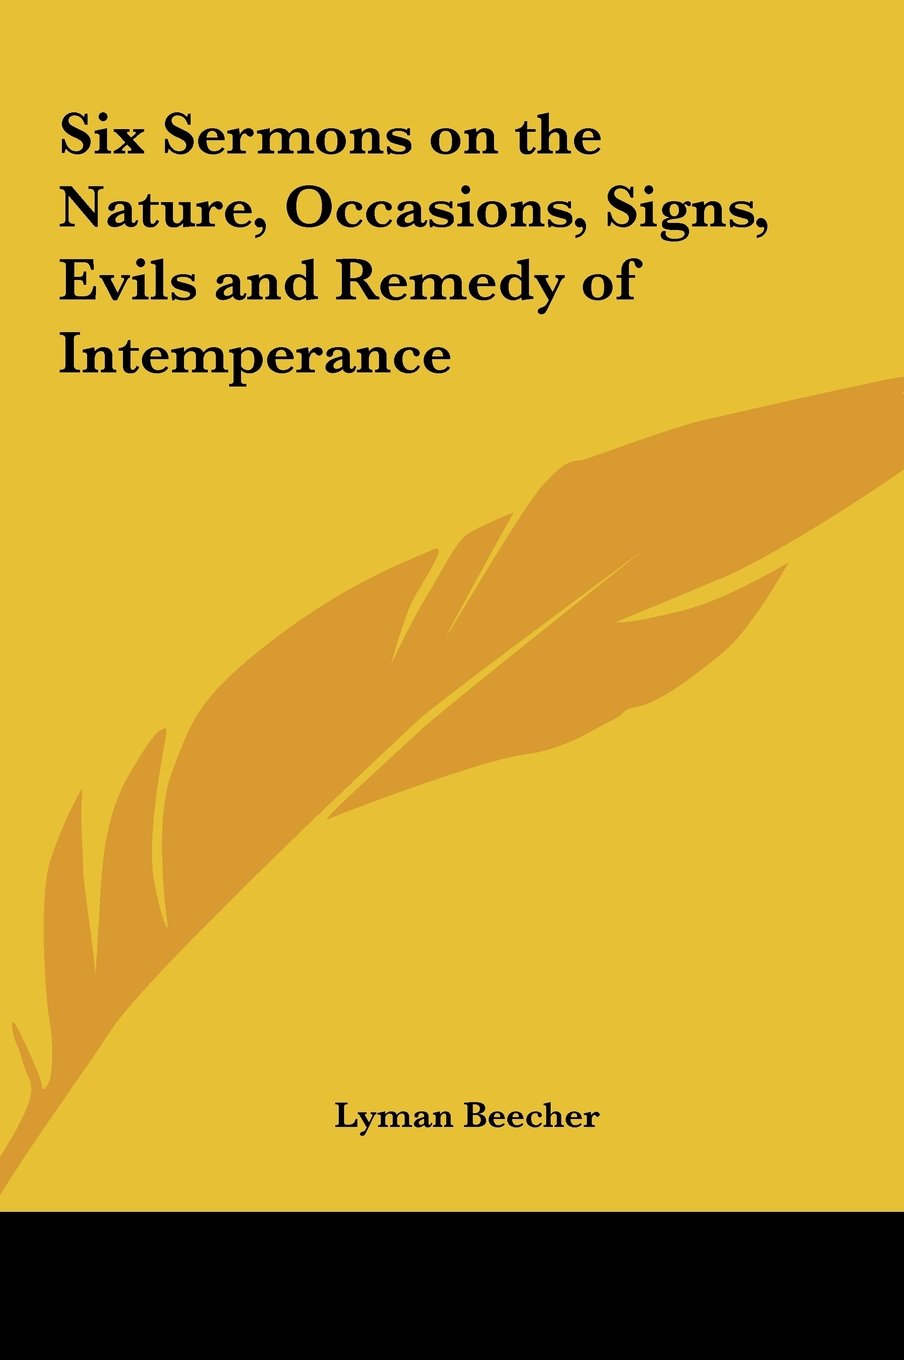 Six Sermons on the Nature, Occasions, Signs, Evils and Remedy of Intemperance pdf